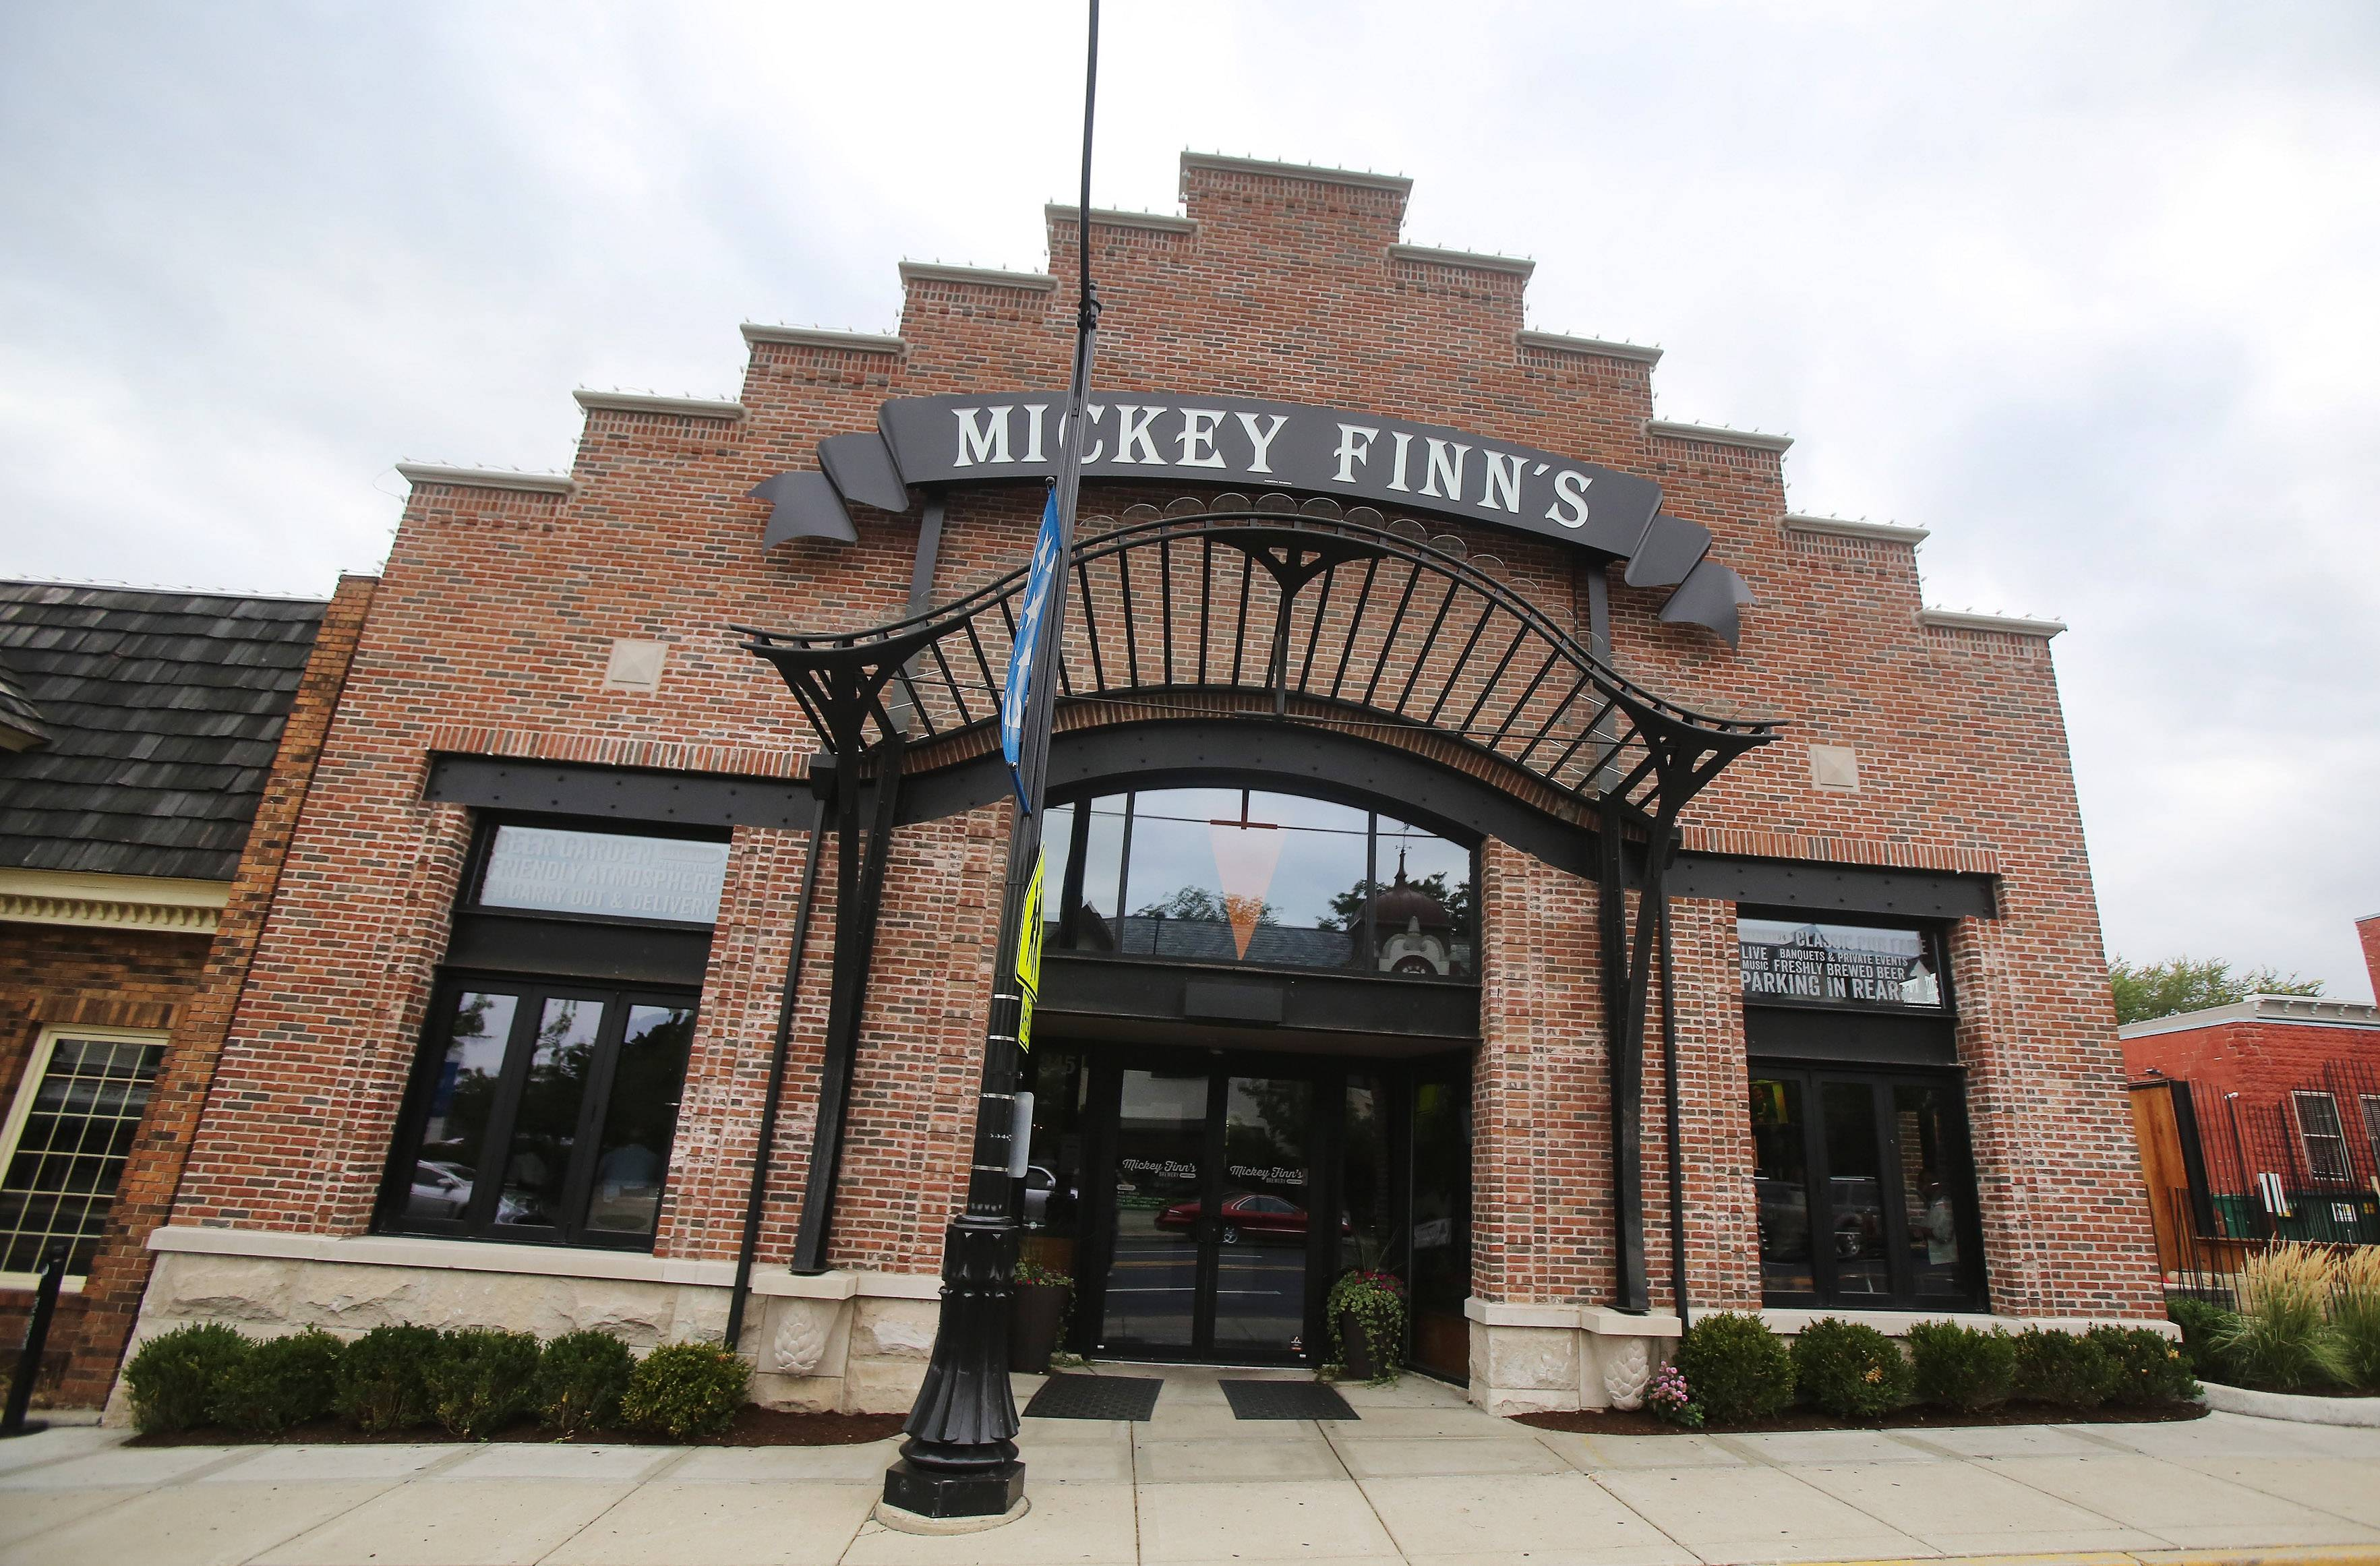 Mickey Finn's moved to a new location in Libertyville in 2014.